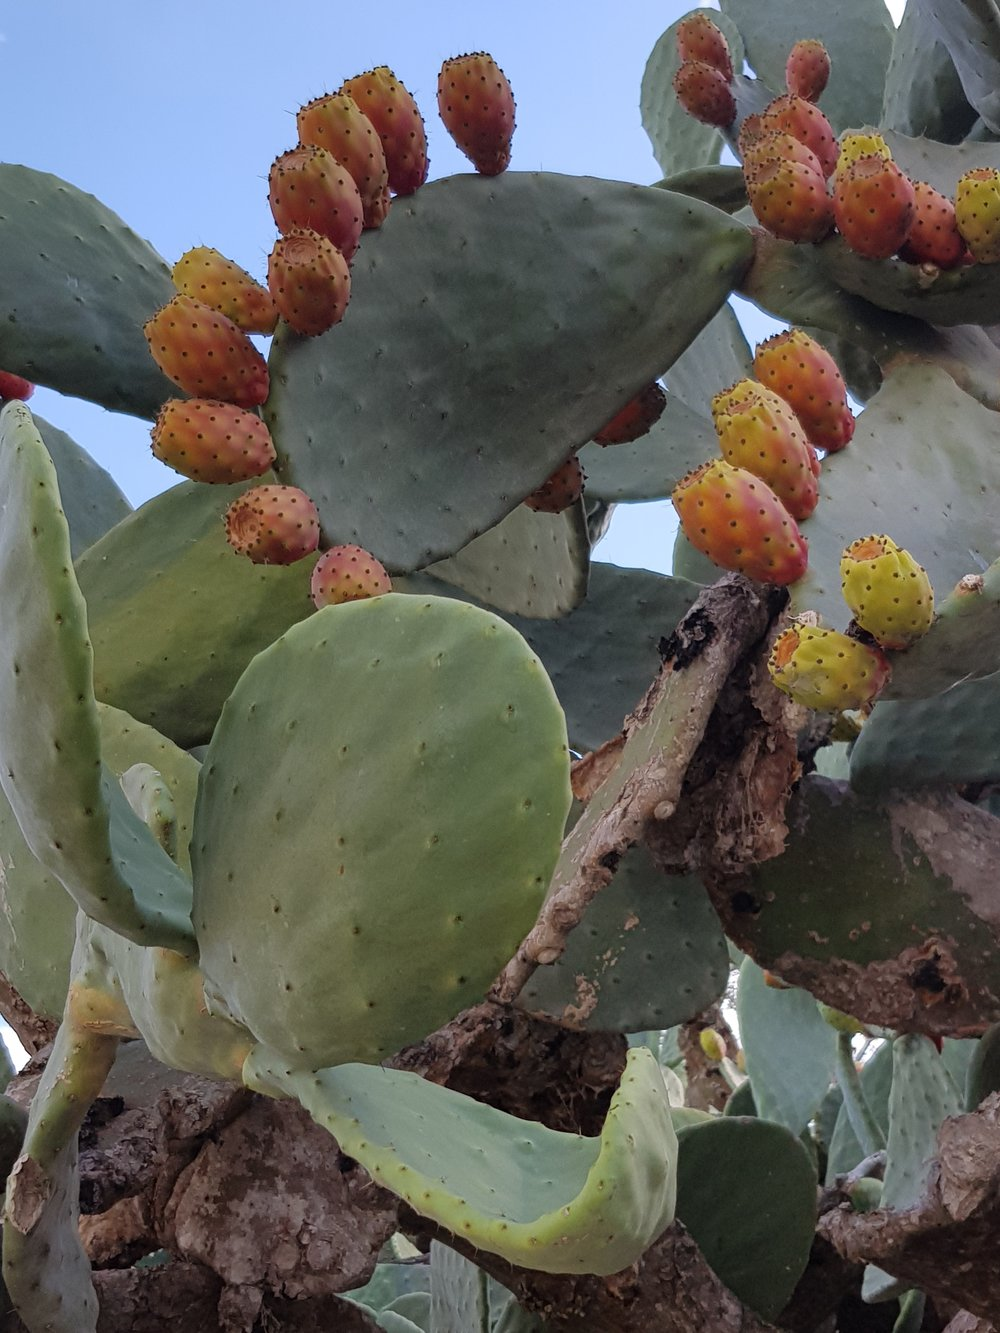 Late summer is the perfect time to indulge in the fruits of the island's prickly pears